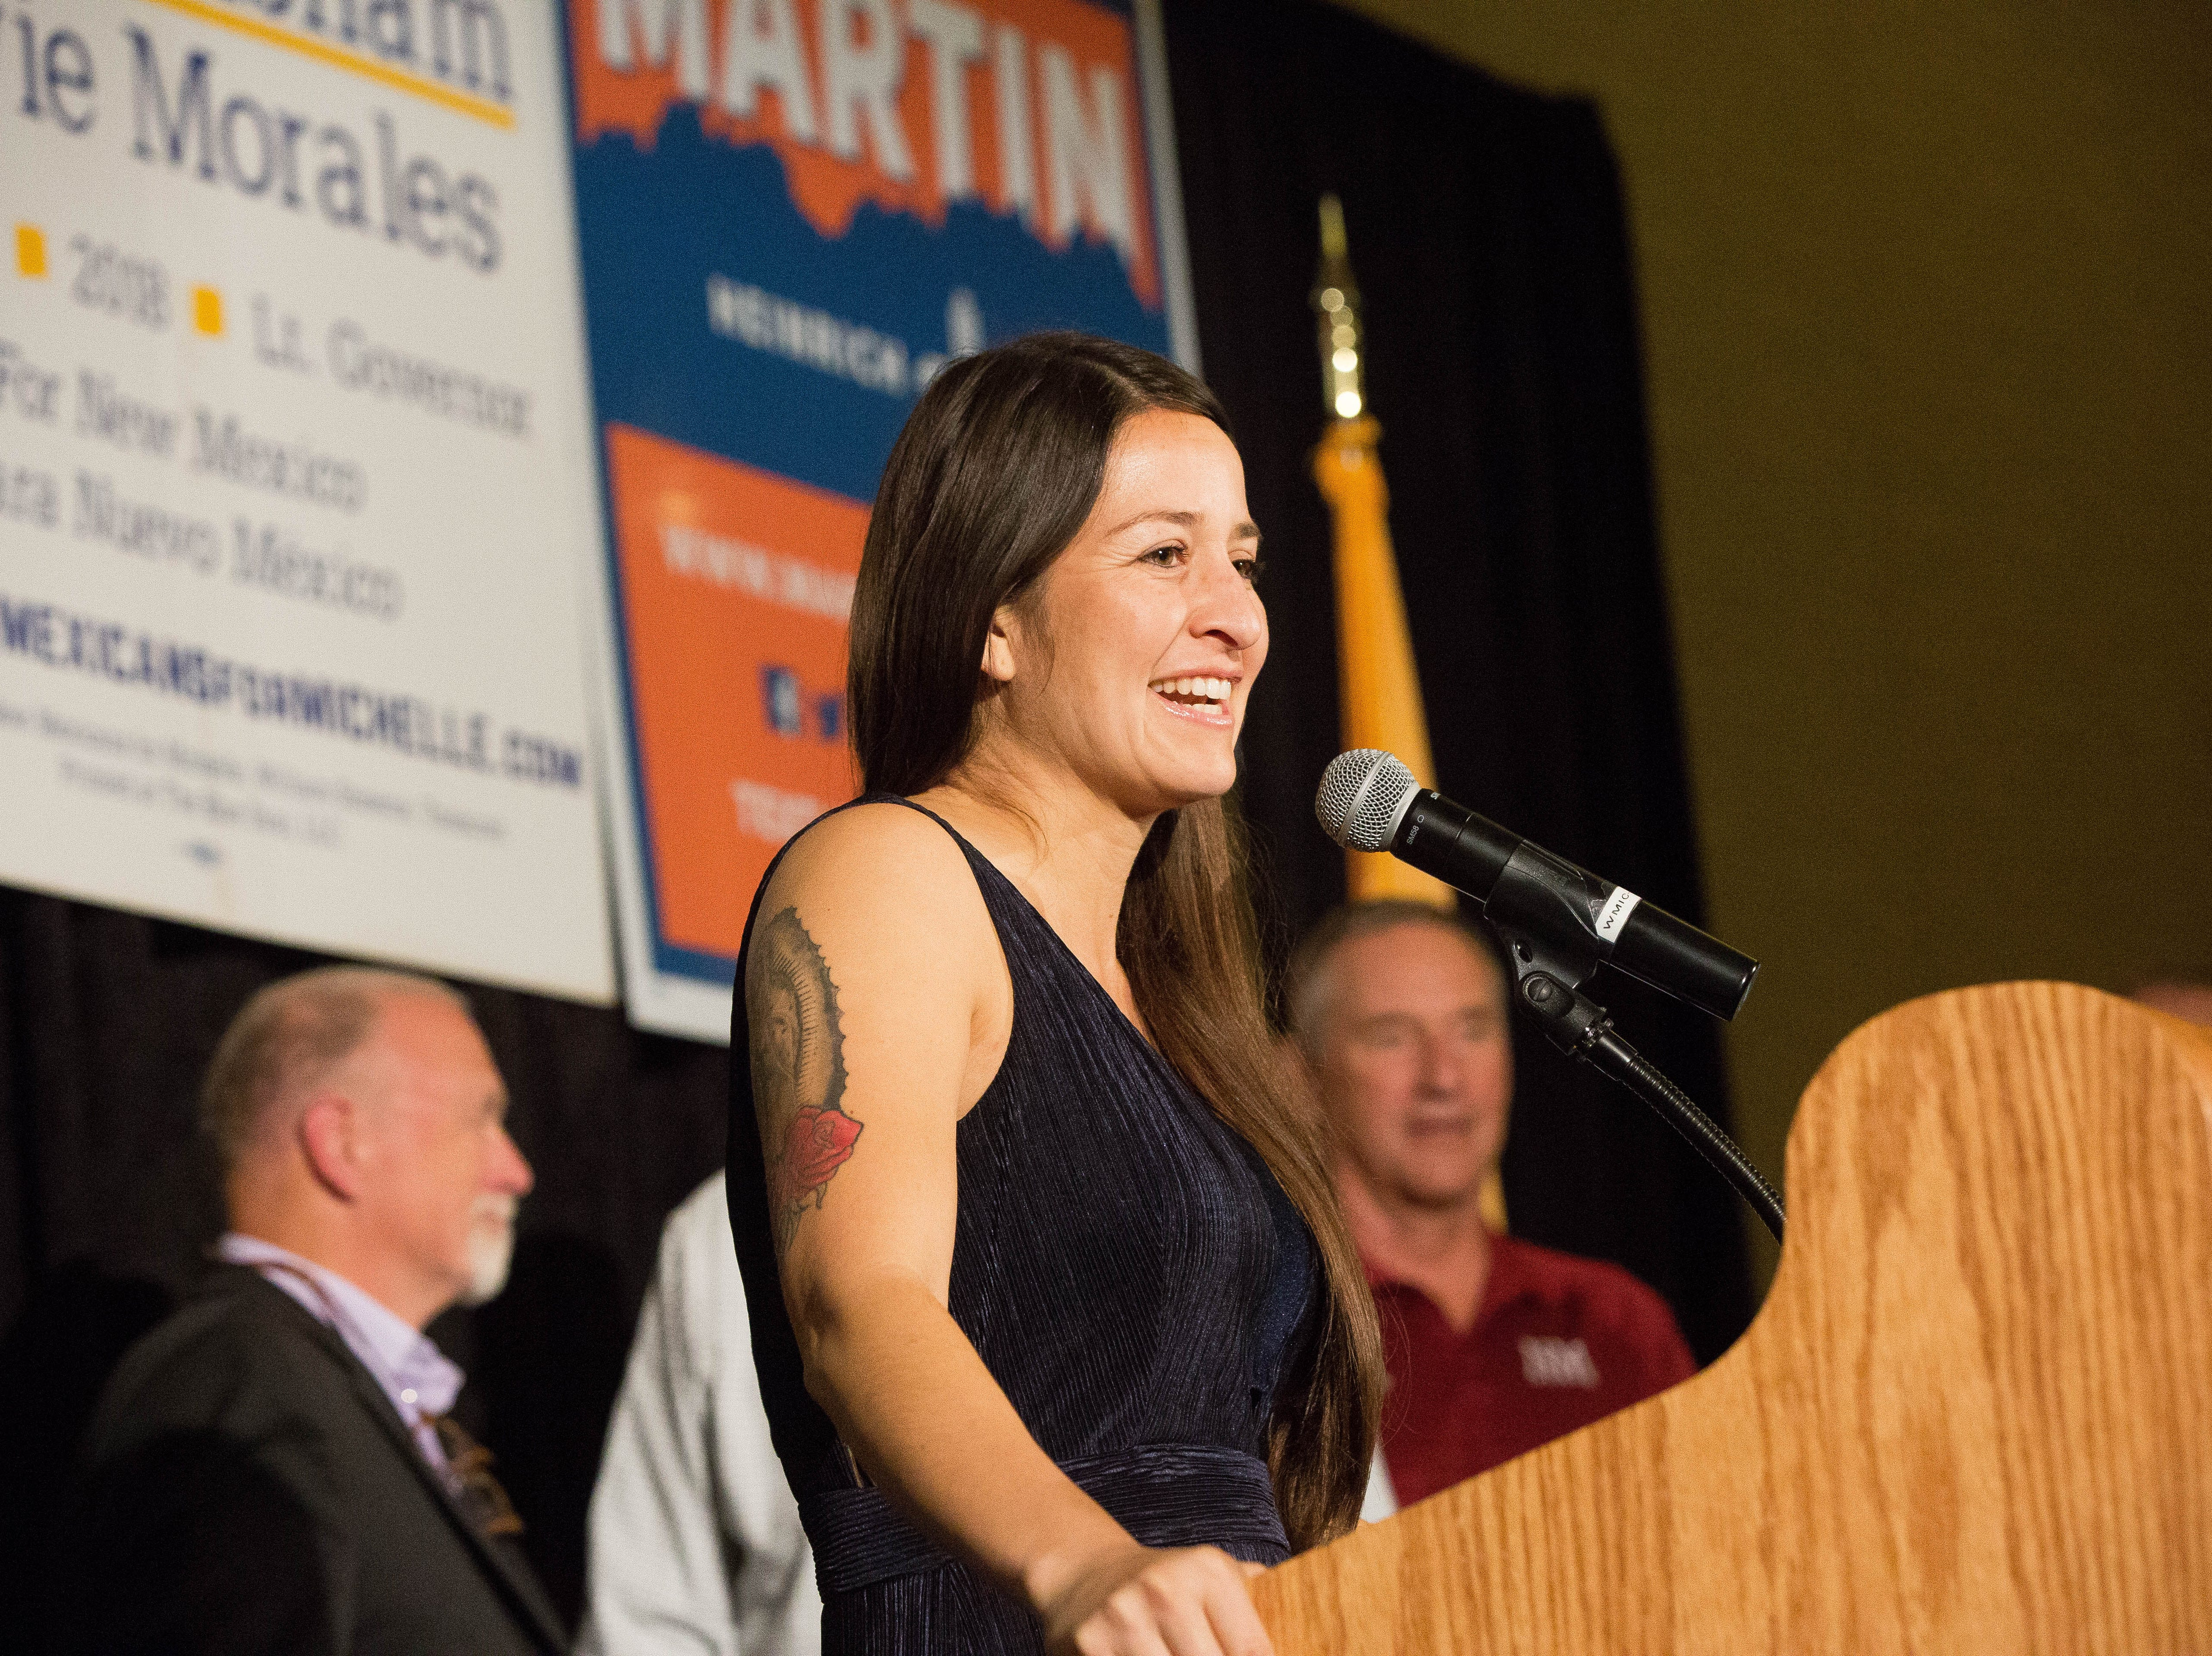 Micaela Lara Cadena, Democratic candidate for House District 33, thanks supporters on Tuesday, Nov. 6, 2018, at a Democratic watch party being held at the Las Cruces Convention Center.